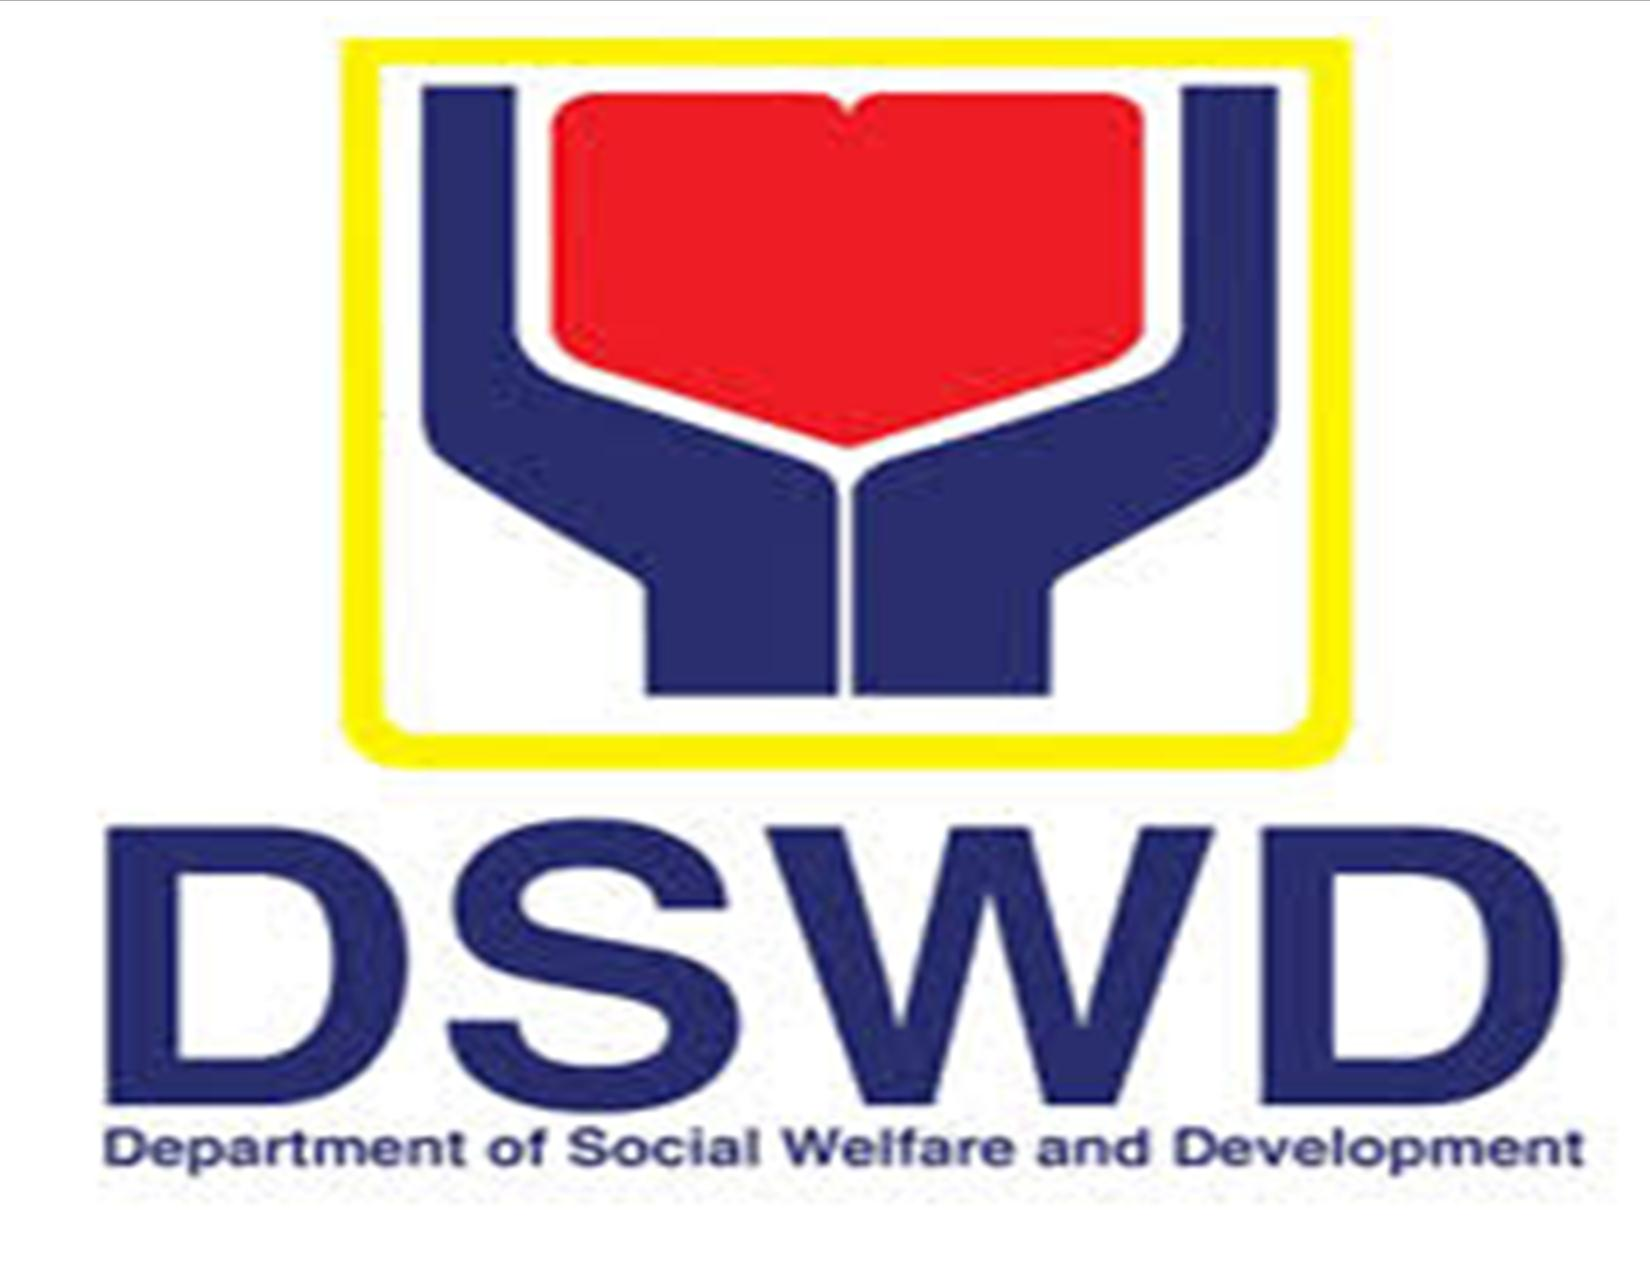 Department of Social Welfare and Development